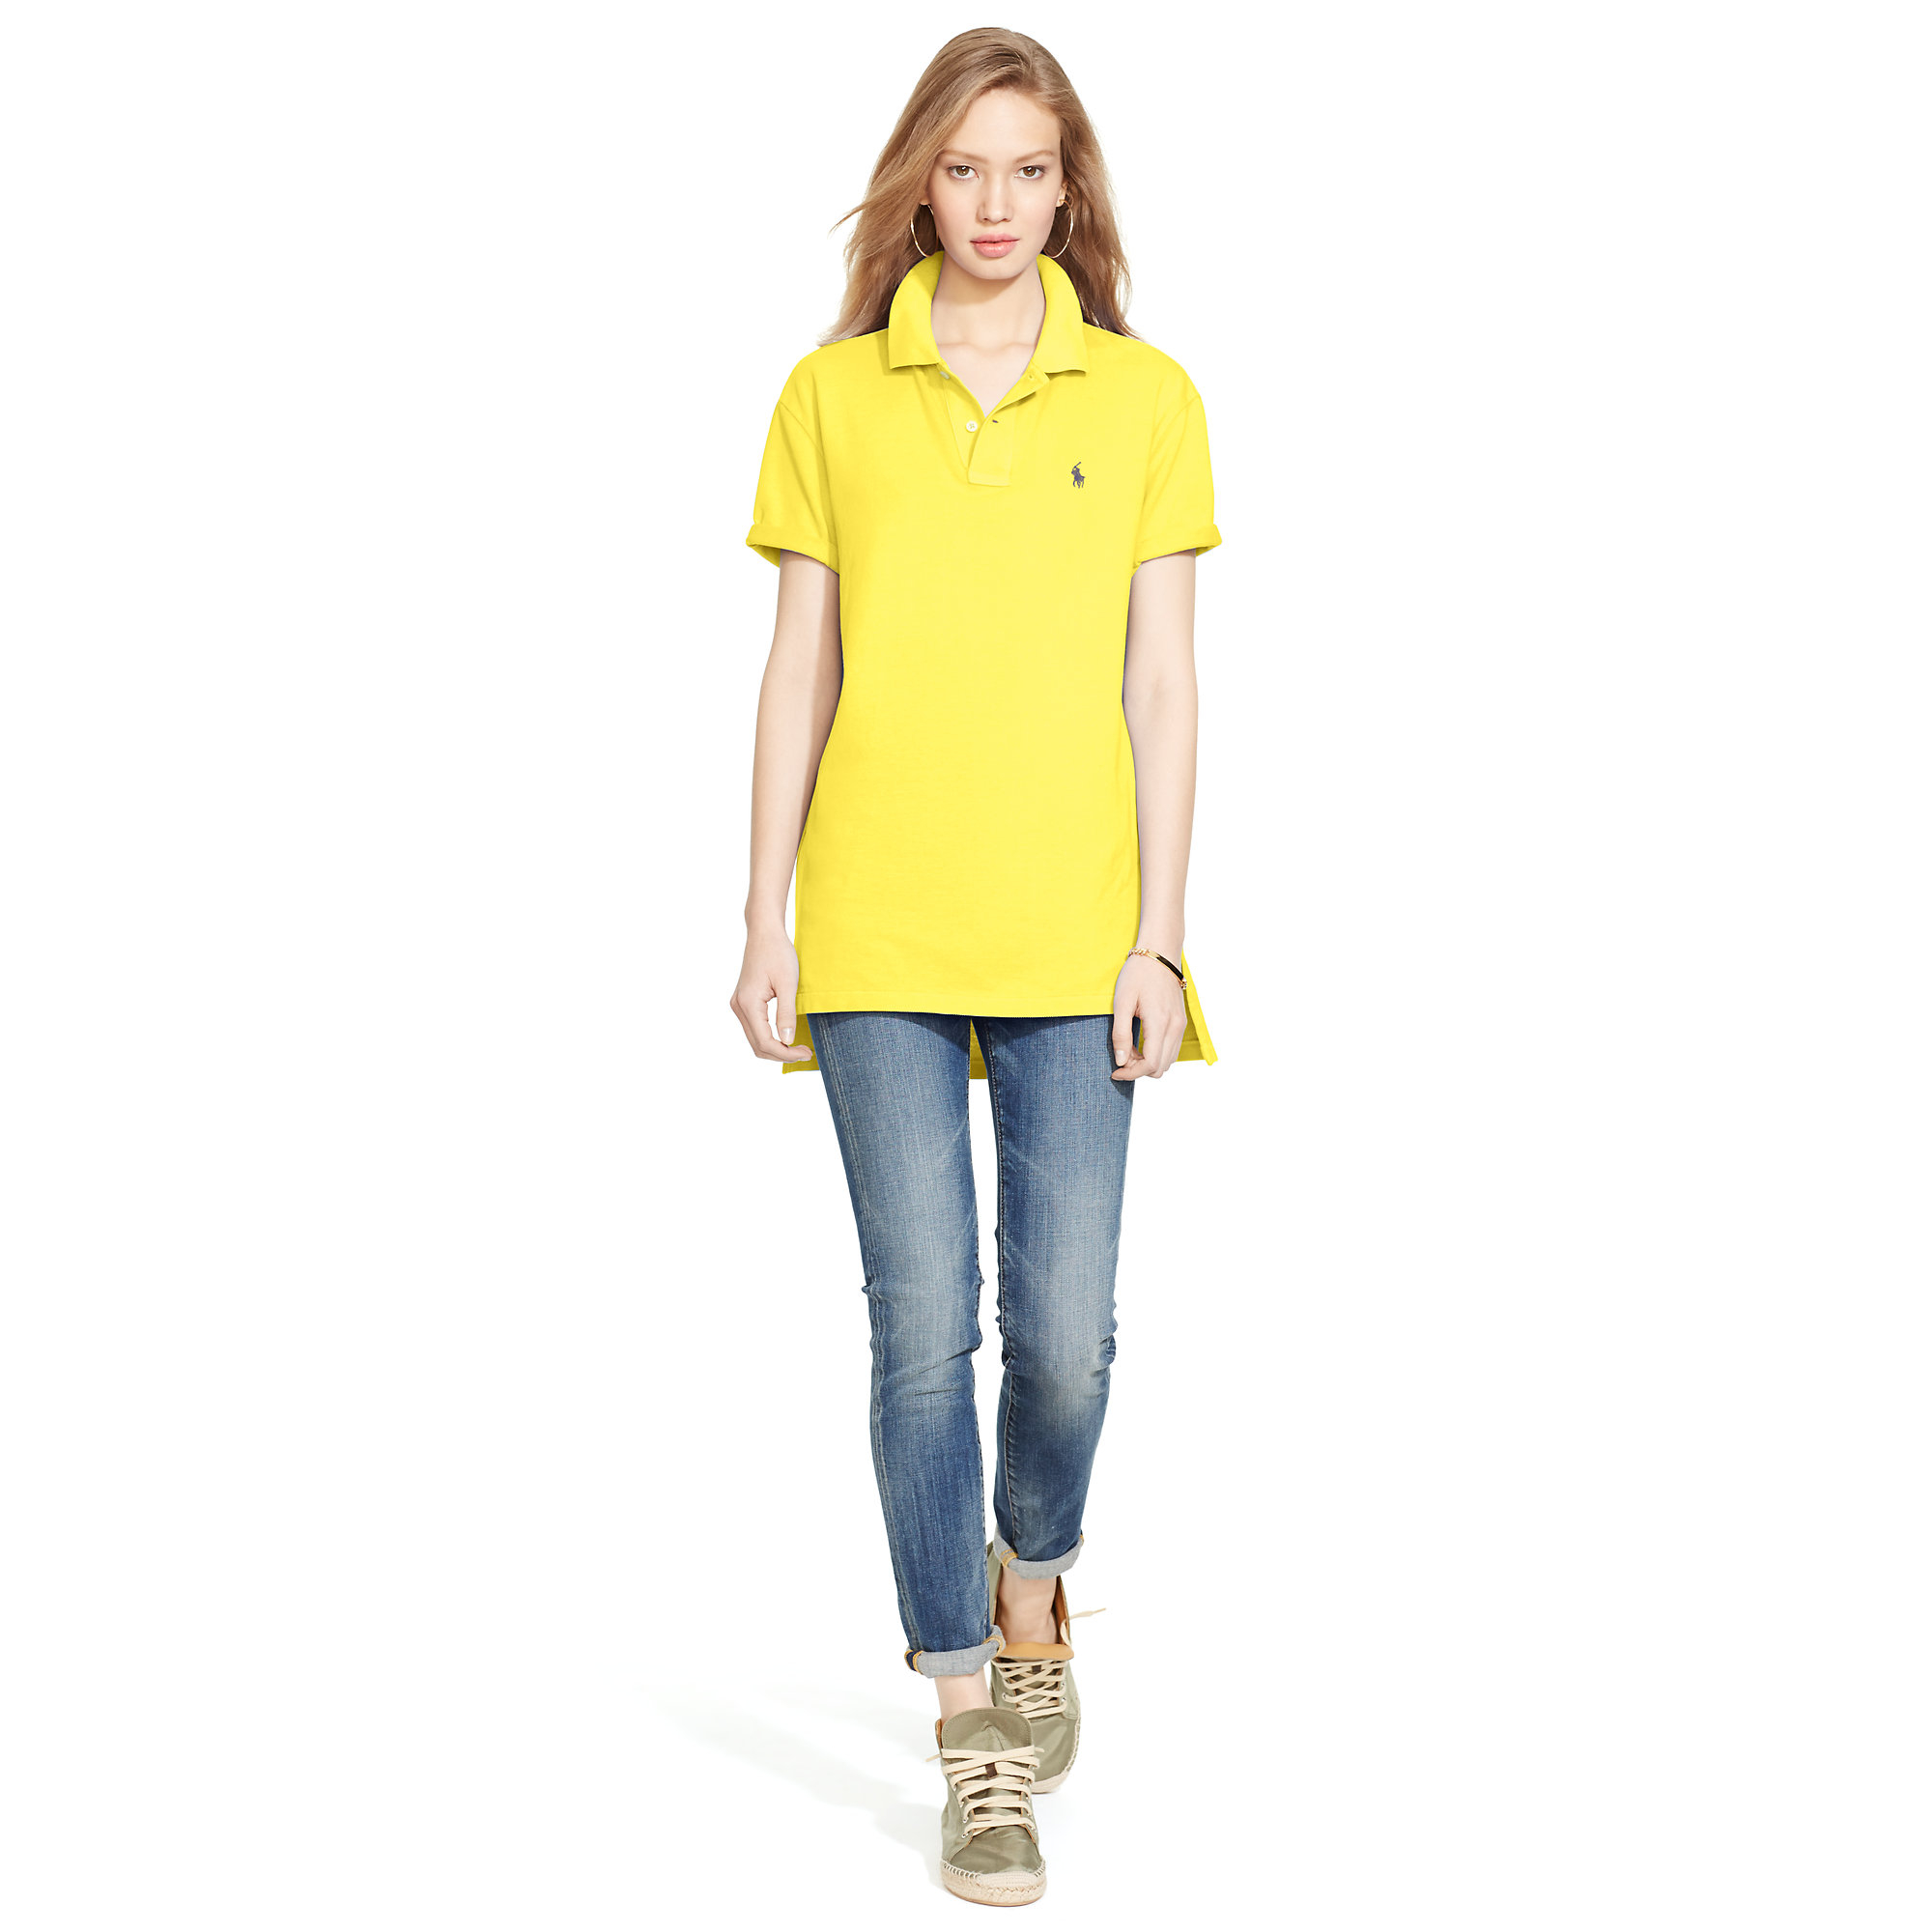 232d32ff81 Lyst - Polo Ralph Lauren Boyfriend Polo Shirt in Yellow